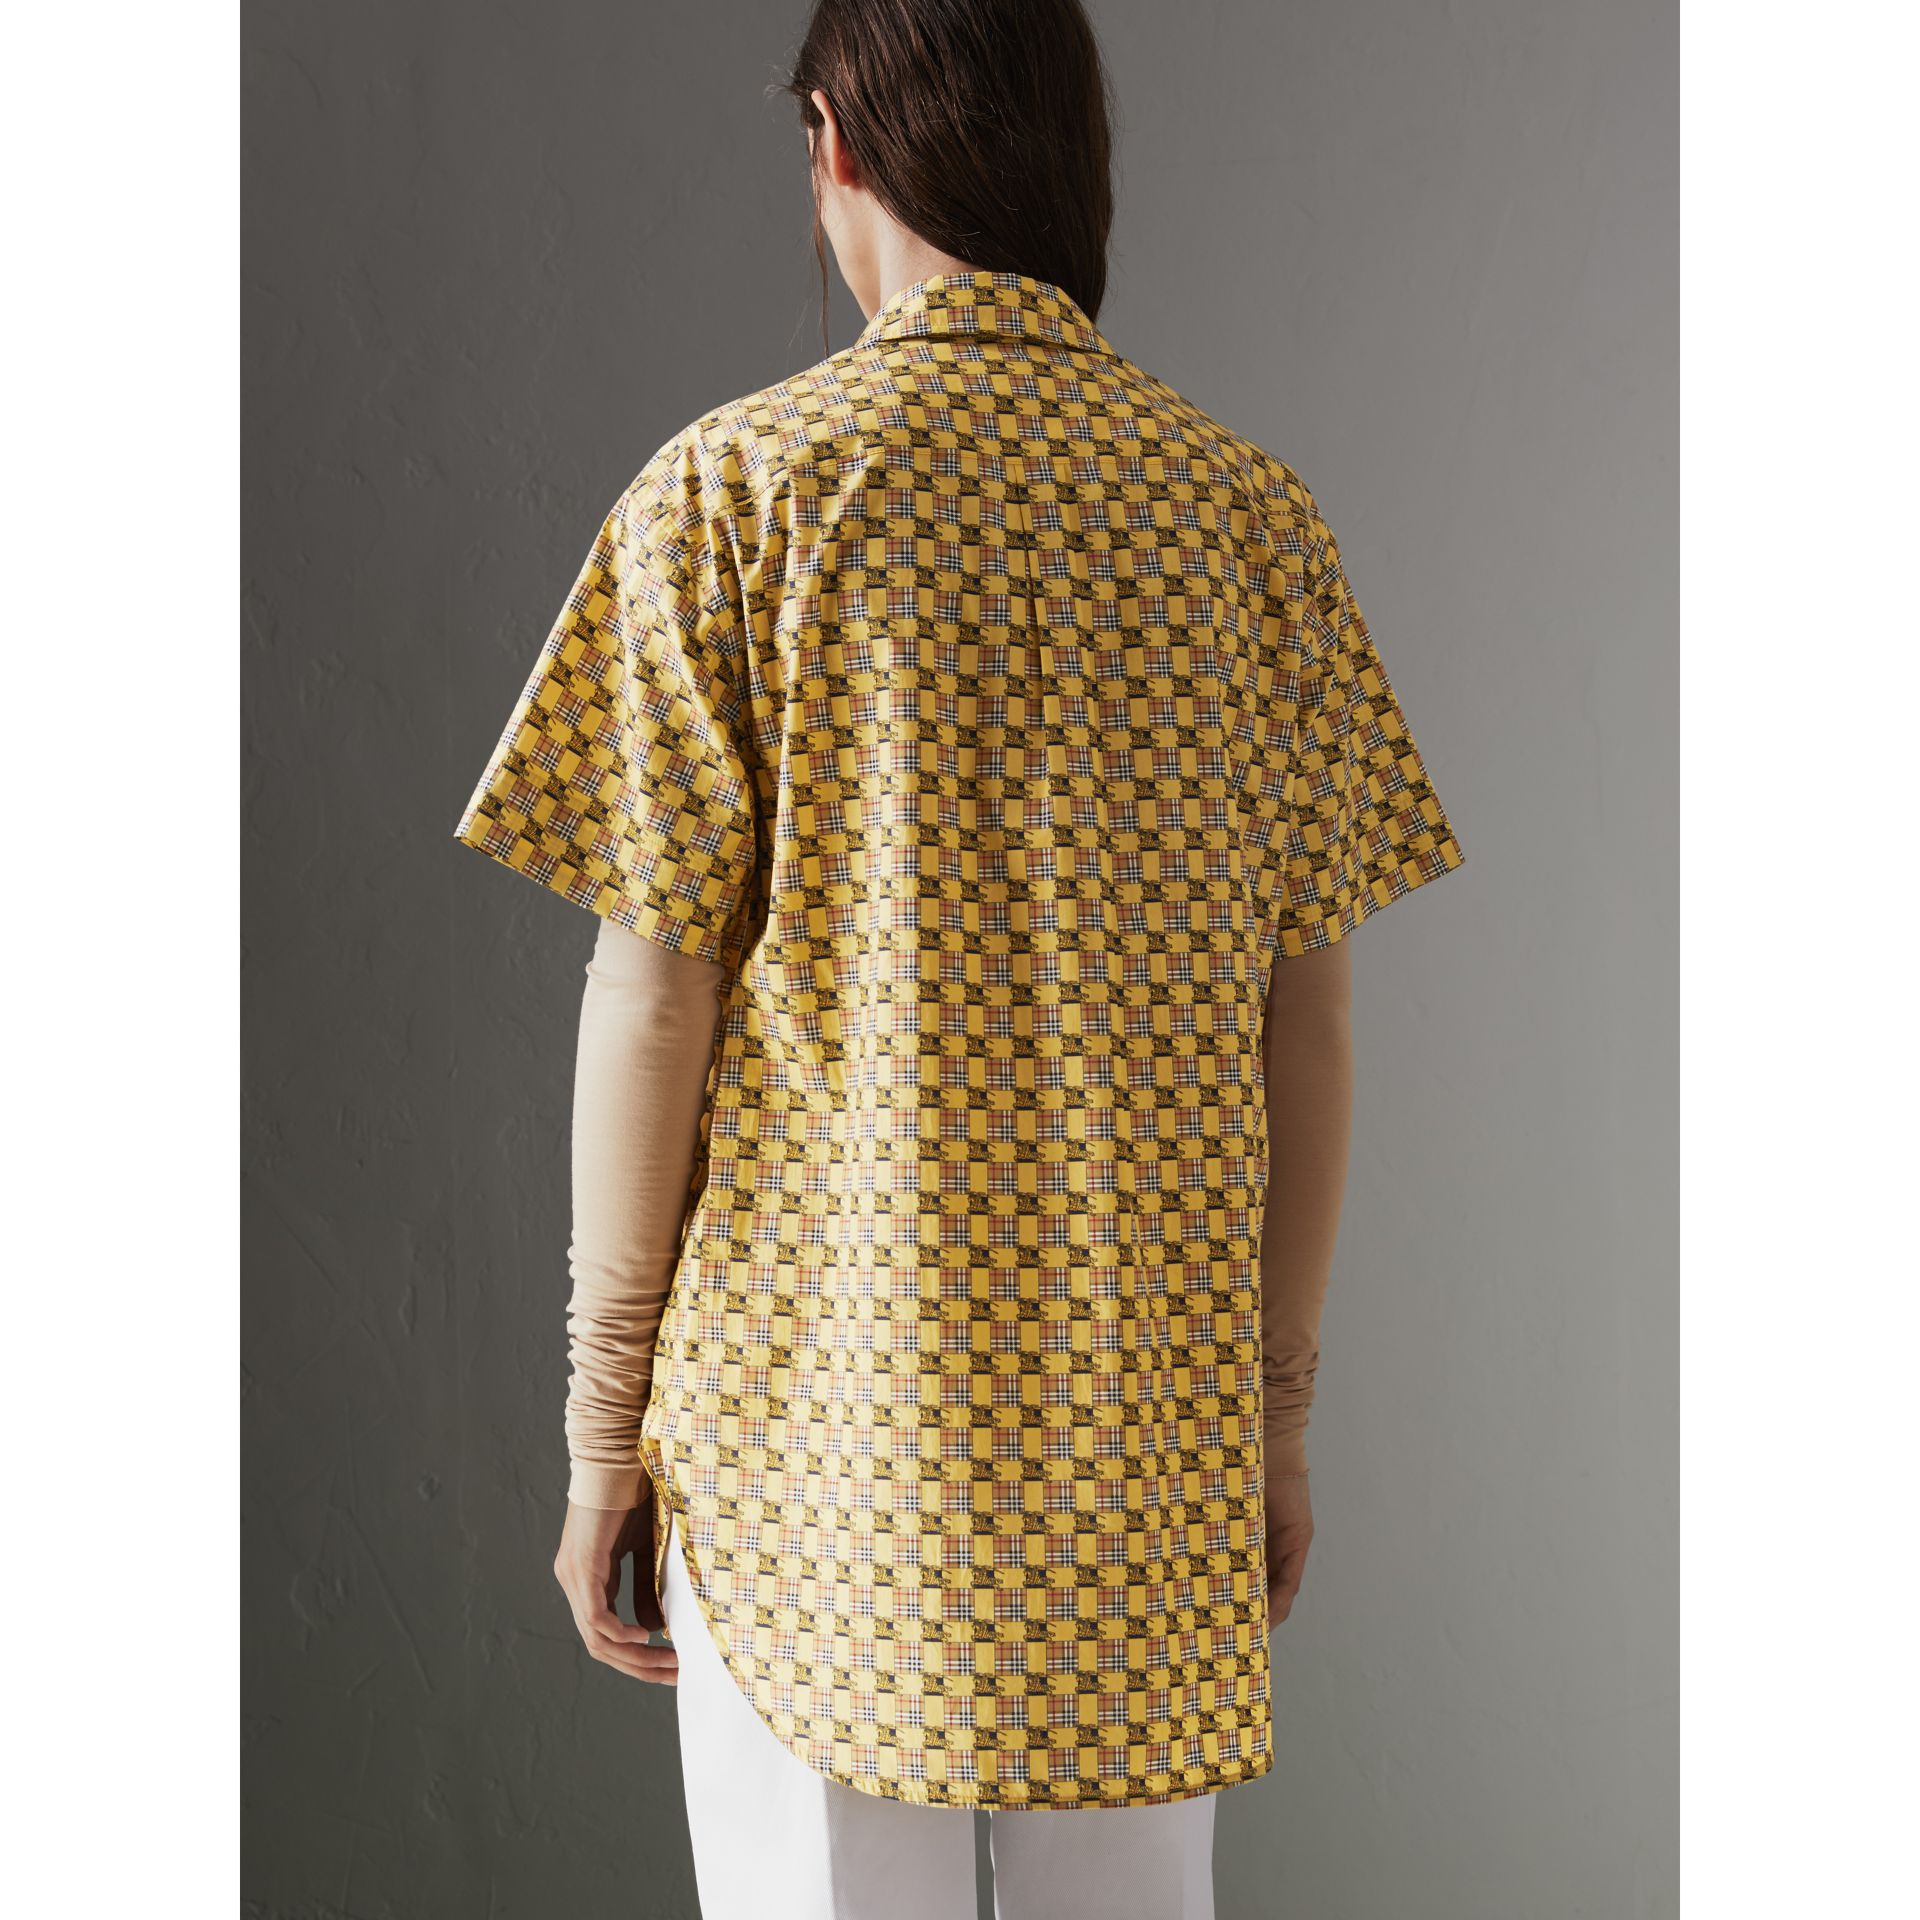 Short-sleeve Tiled Archive Print Cotton Shirt in Yellow - Women | Burberry - gallery image 2